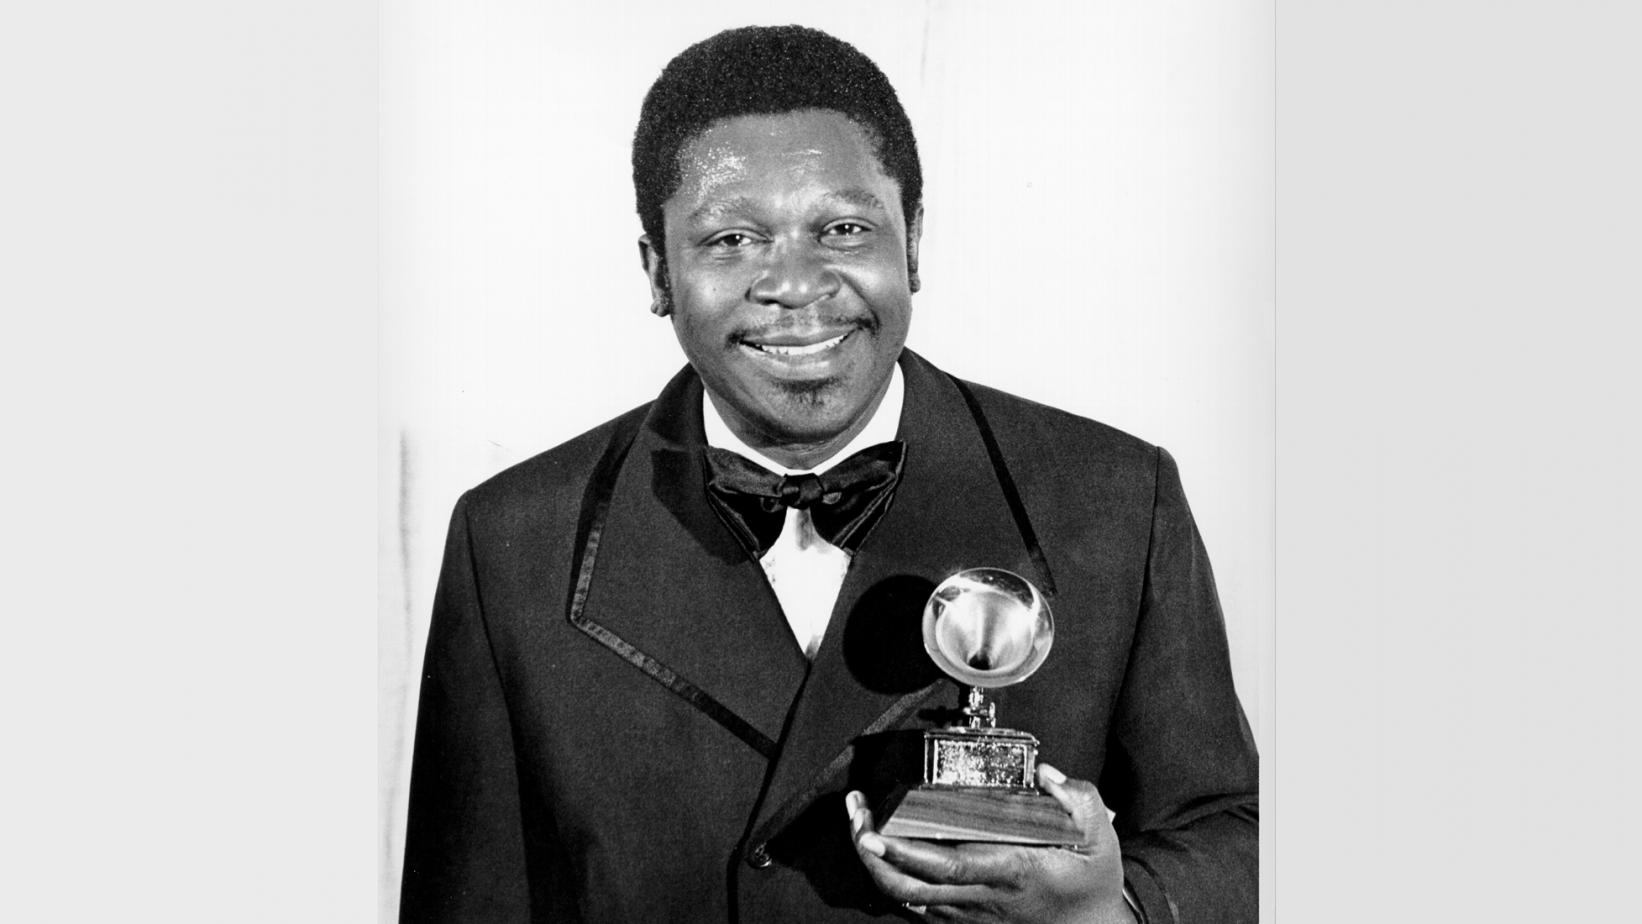 B.B. King at 1971 GRAMMYs